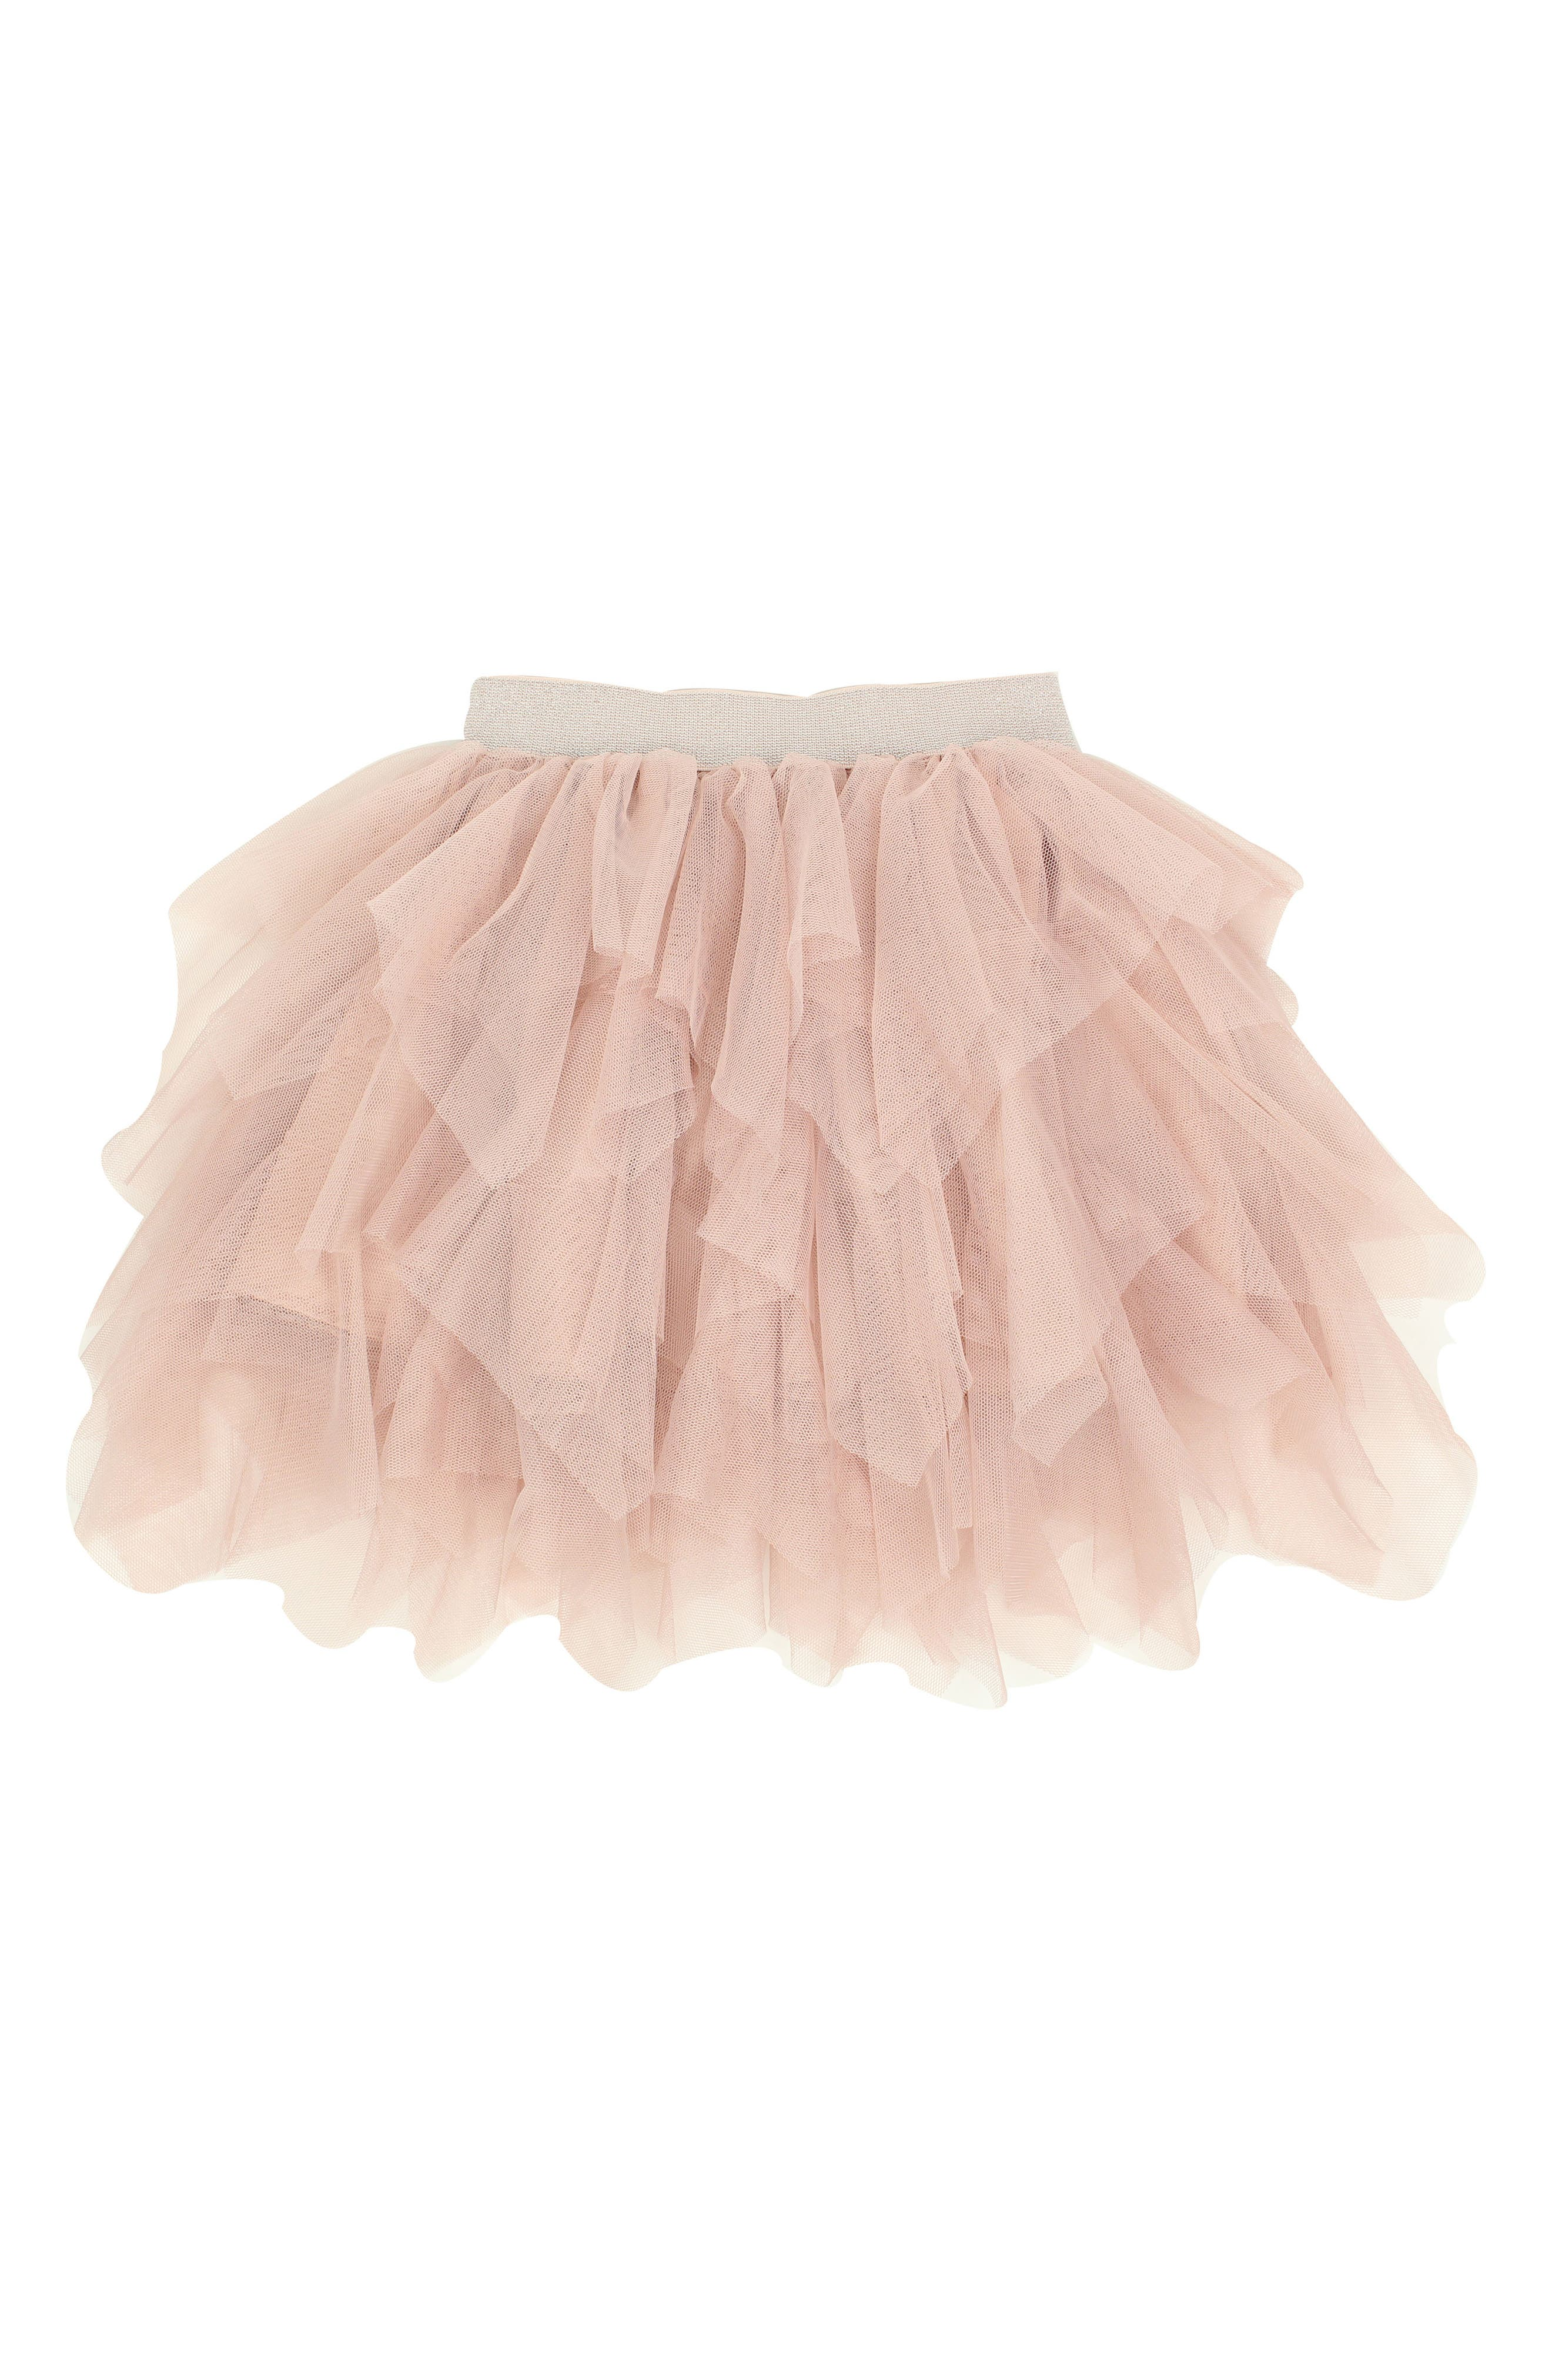 Popatu Tiered Tulle Skirt (Toddler Girls & Little Girls)